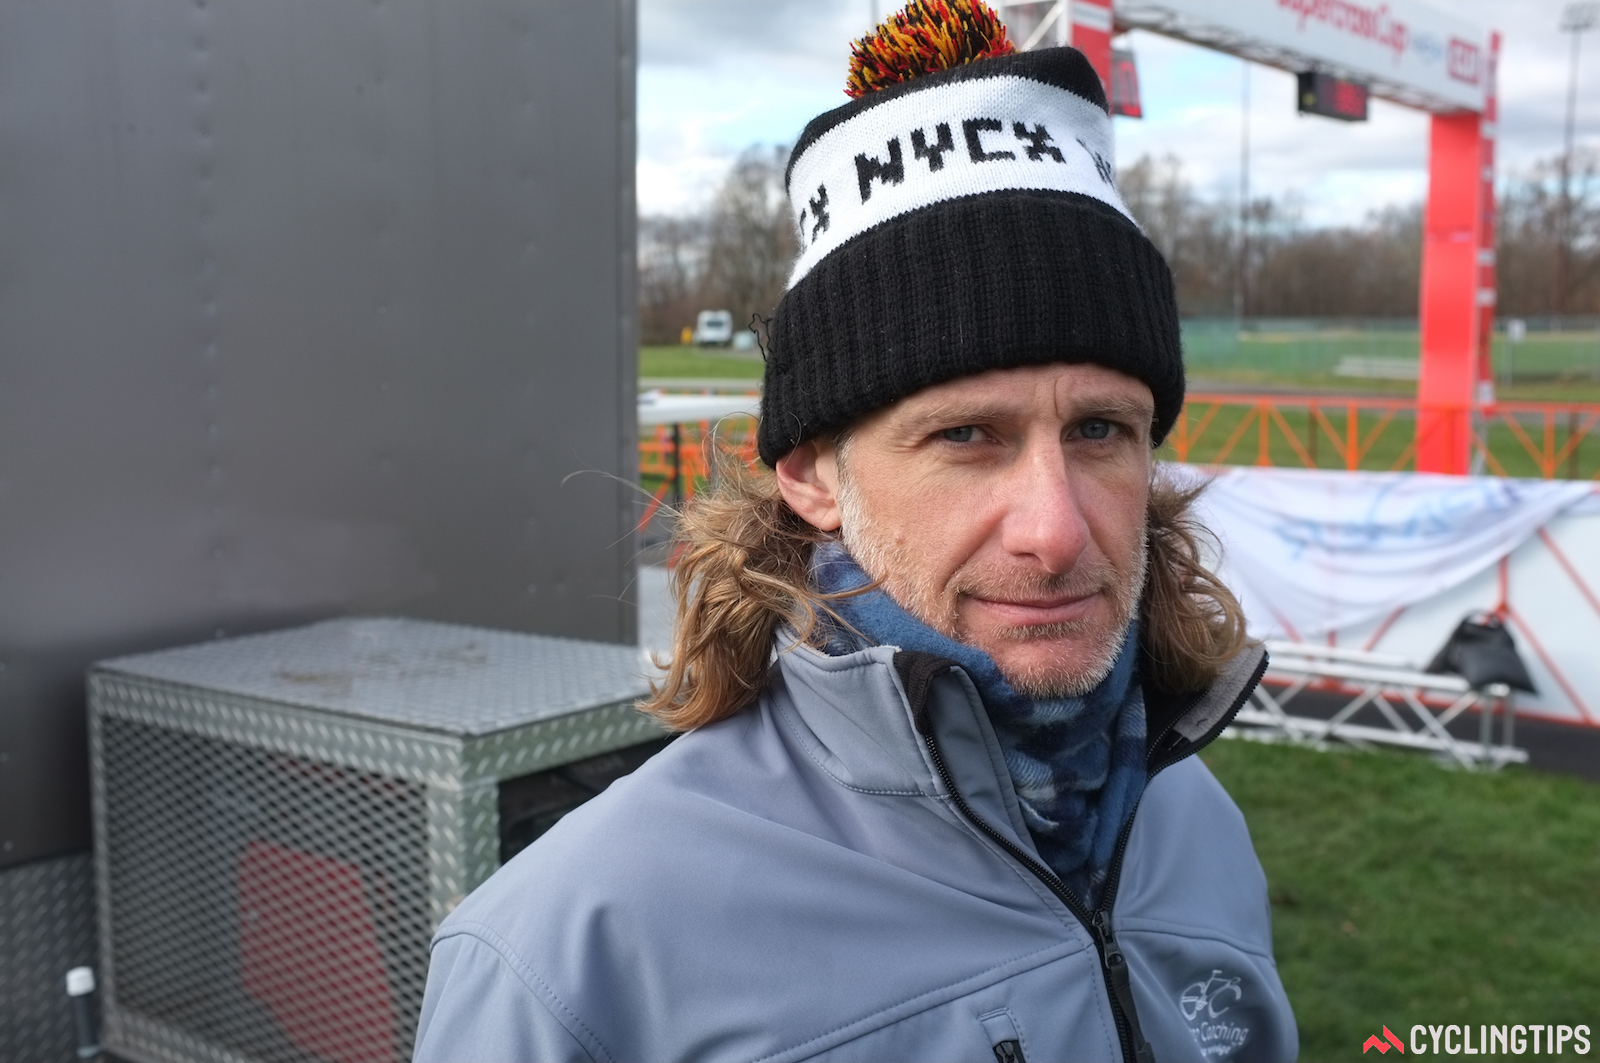 Bill Elliston, November 2017, at the Supercross Cup event in Suffern, New York, where he worked as race announcer.